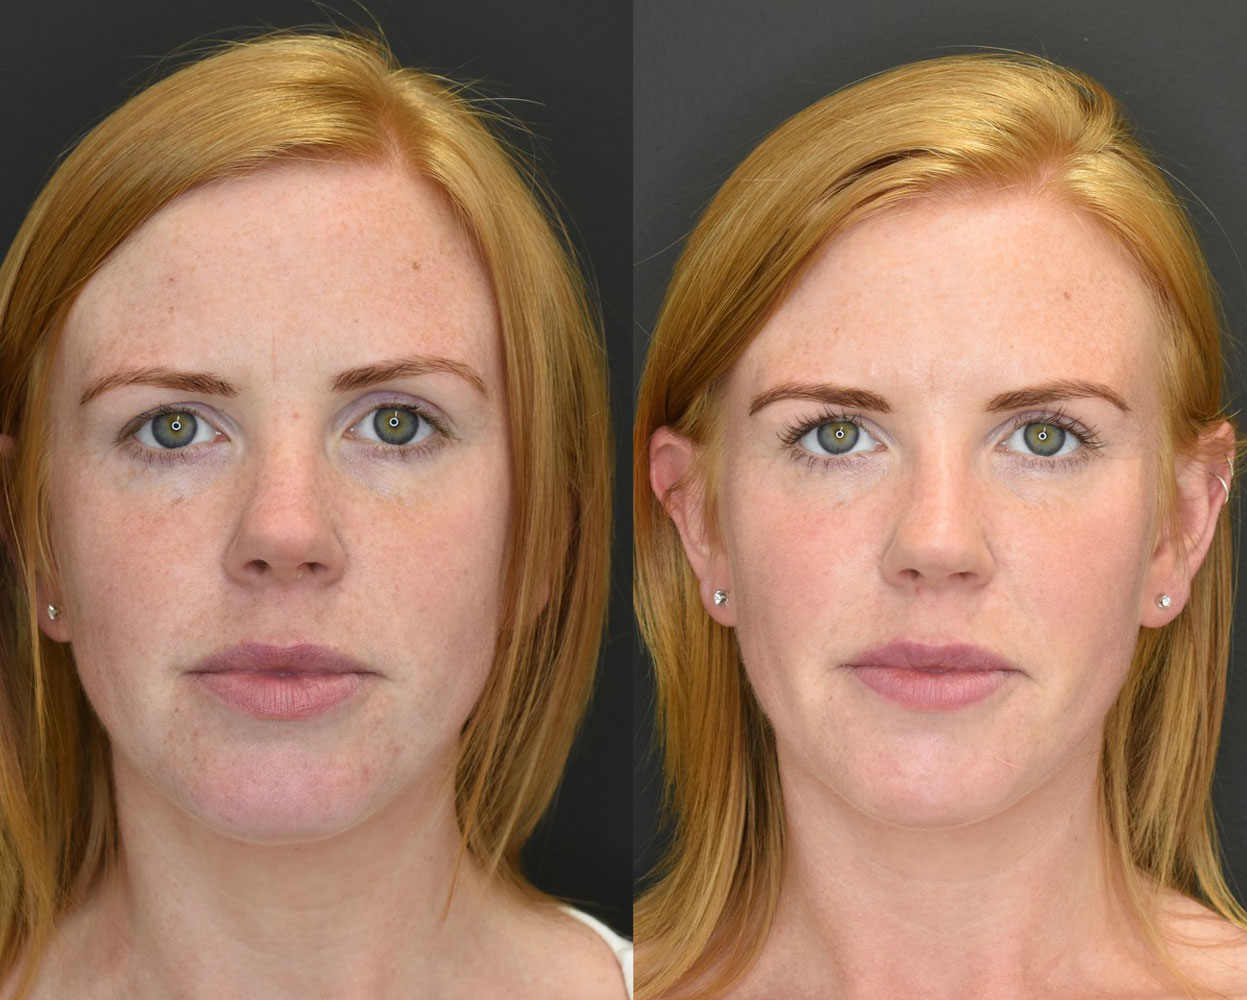 Volumetric Facelift Results Young Woman Before and After